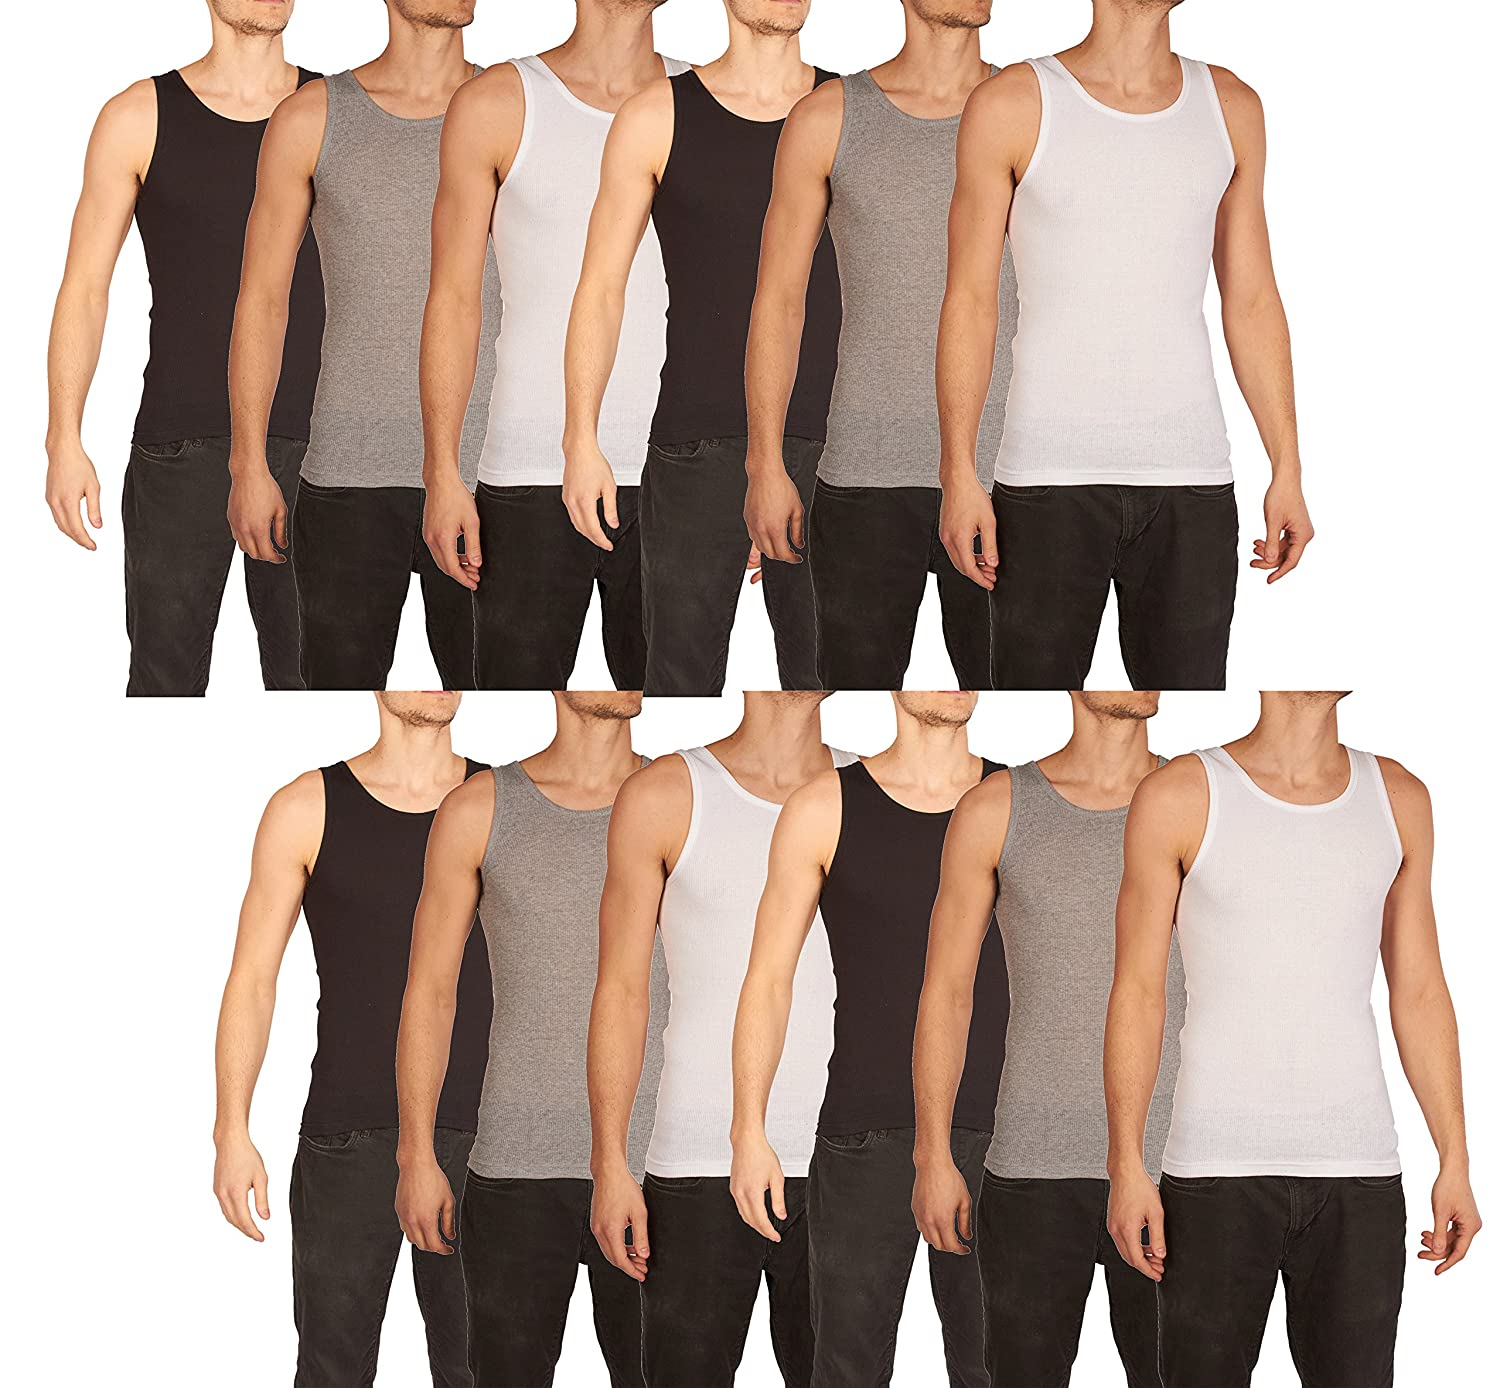 b58eea9e Each order includes 12 A-Shirt Undershirts for Men. 4 White, 4 Black, and 4  Heather Gray. QUALITY: These tanktops are made with high quality materials  and ...